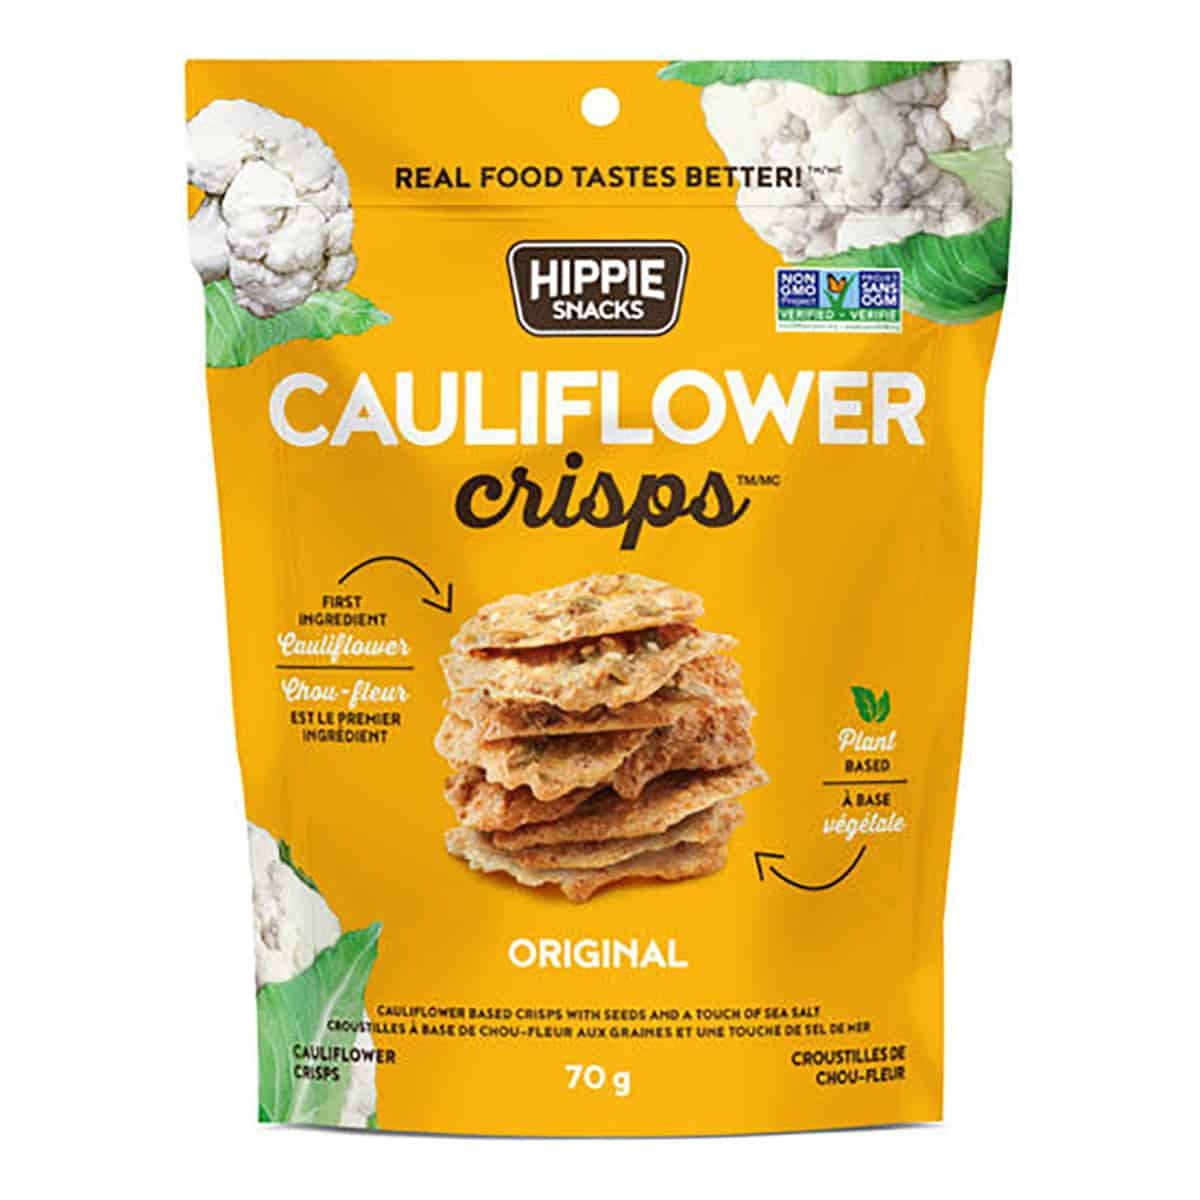 "A package of cauliflower crisps from the brand ""Hippie Snacks"" as an example of a healthy packaged snack."